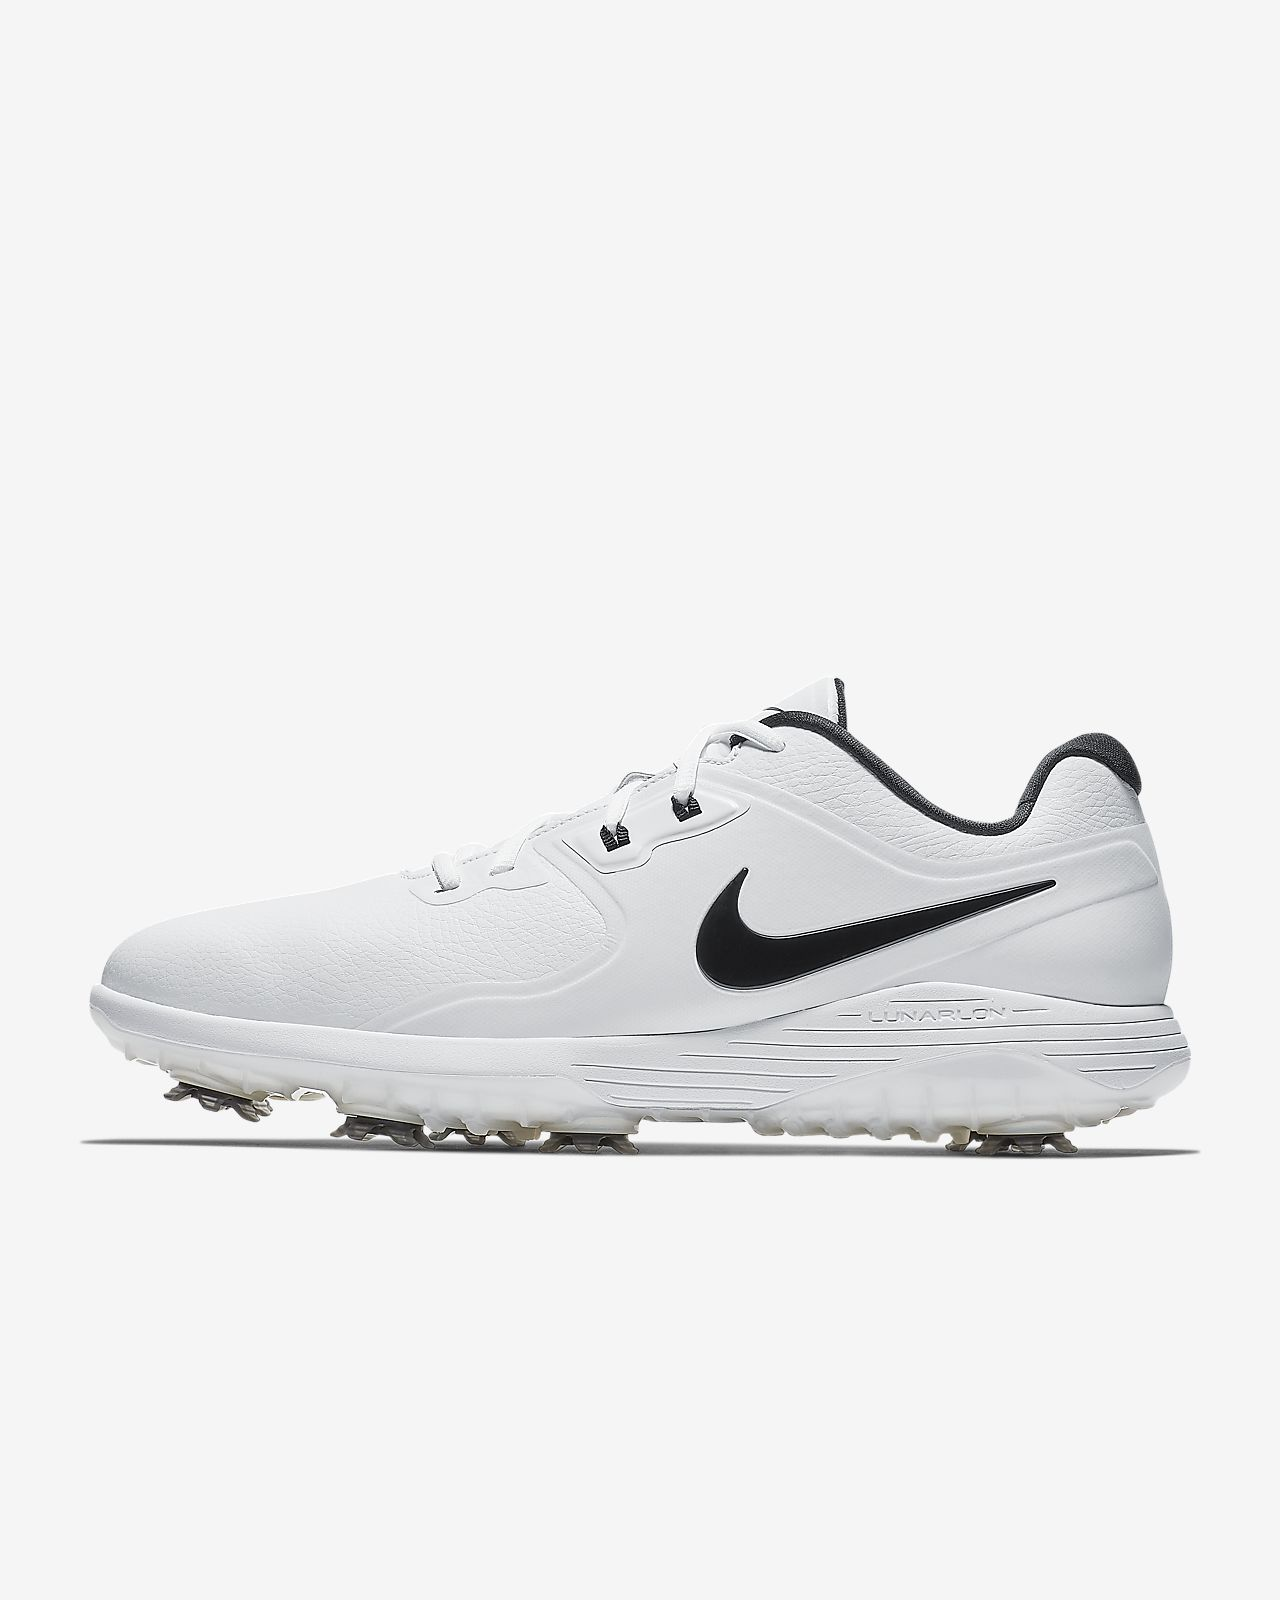 Nike Vapor Pro Men's Golf Shoe